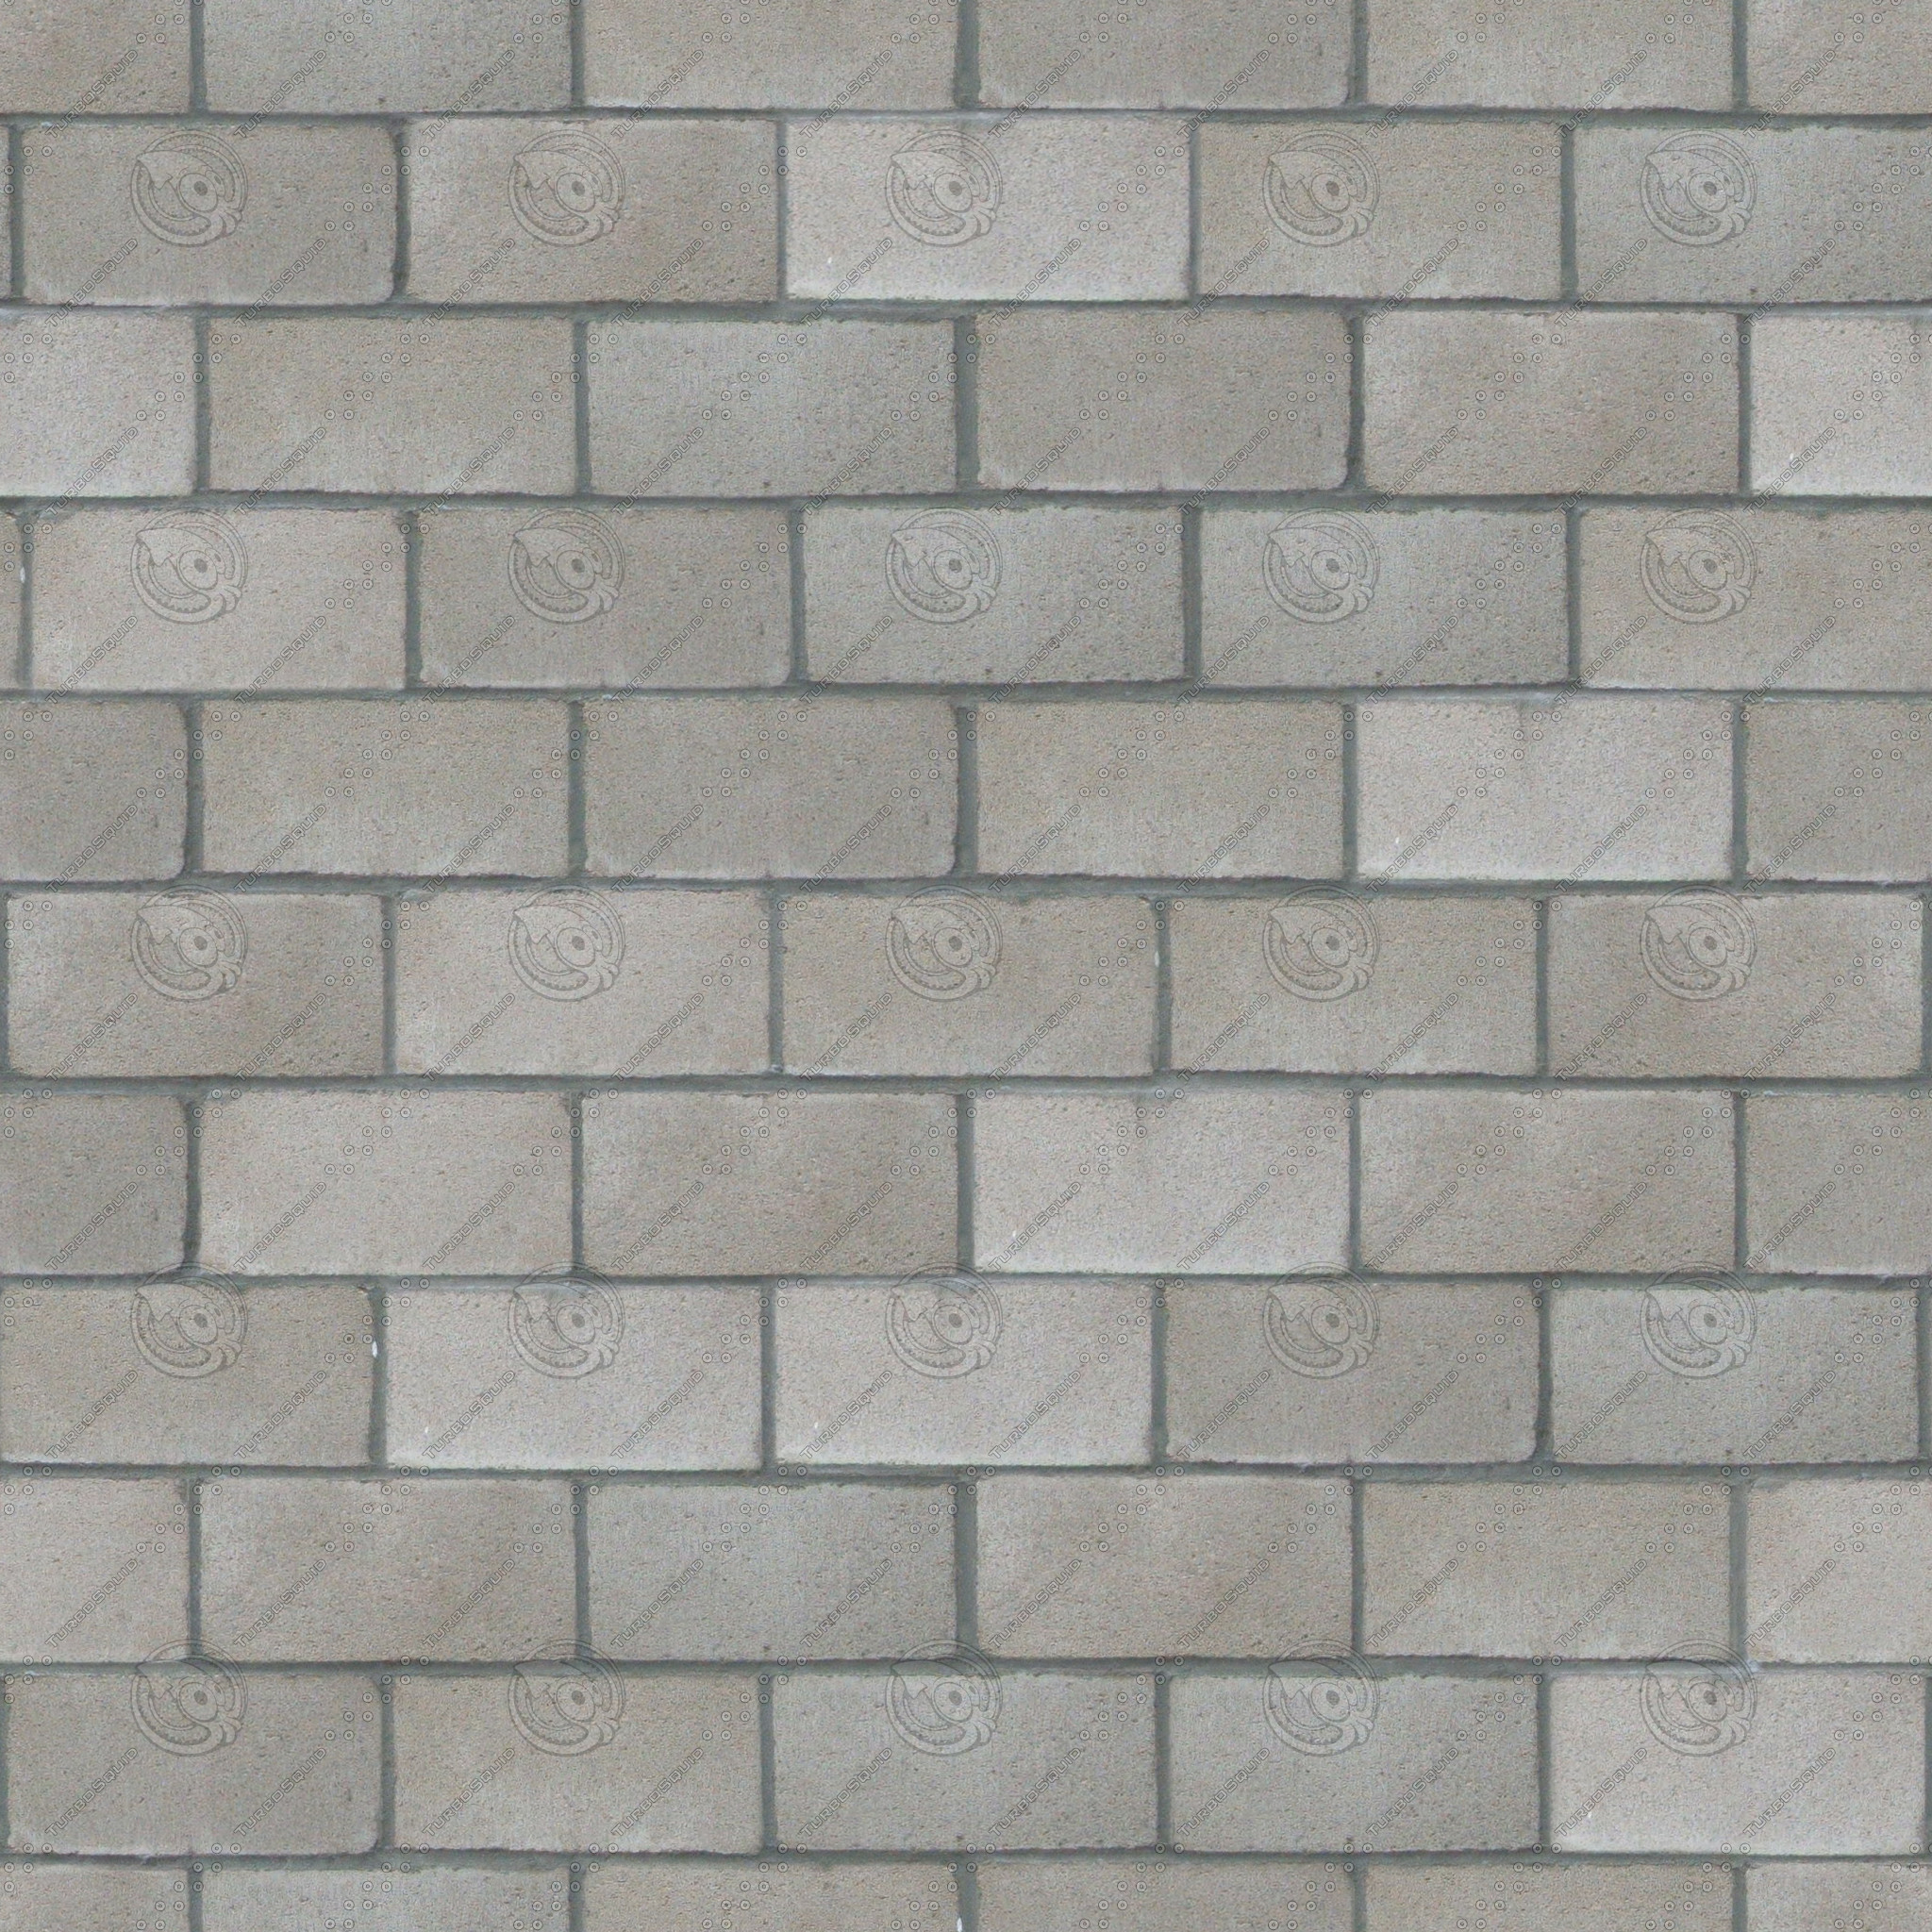 Browse And Download Brick Texture Png Pictures image #23880